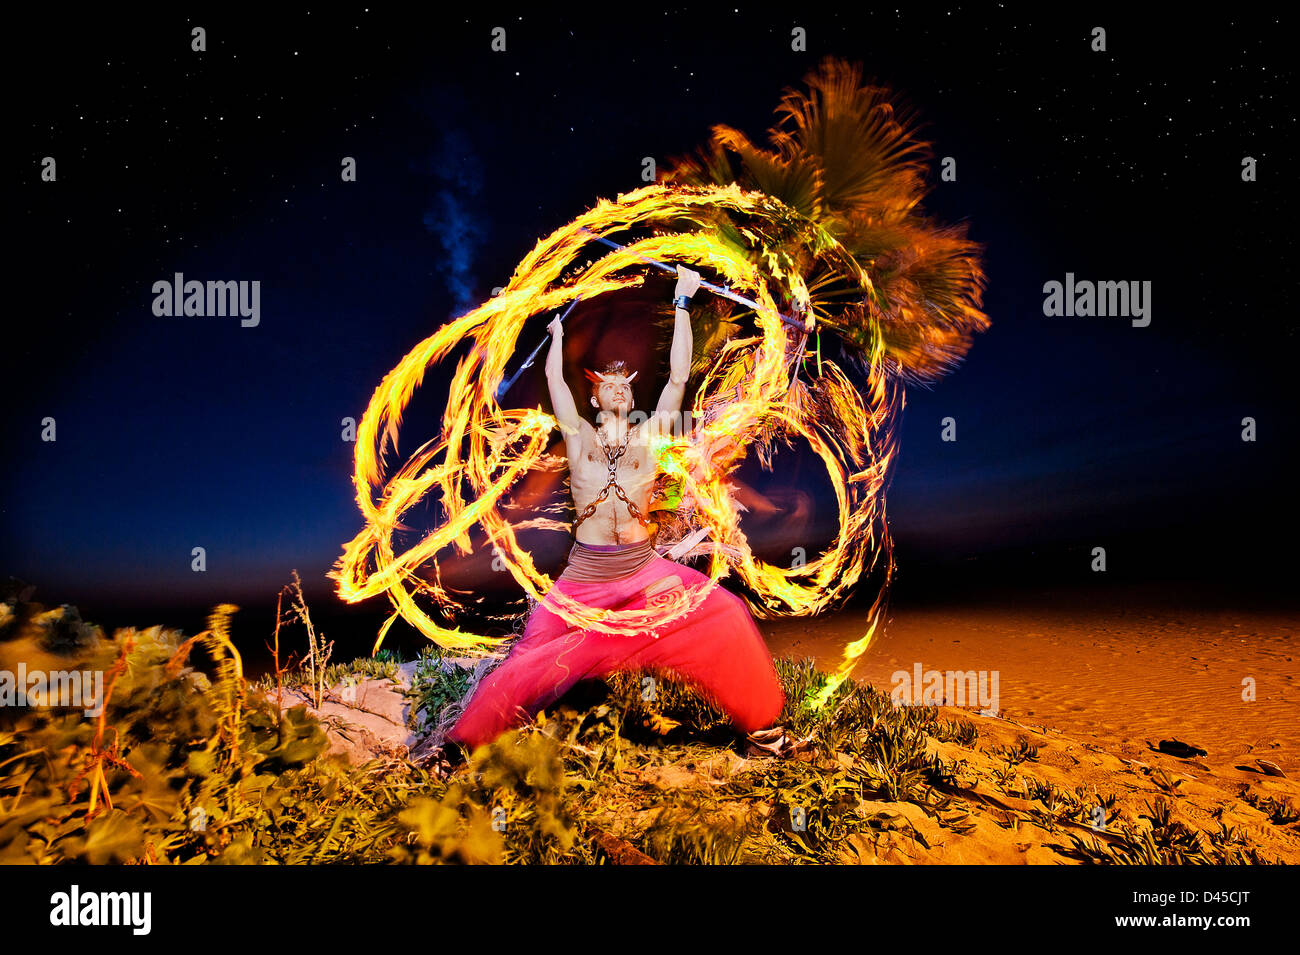 Fire Breather Performer - Stock Image